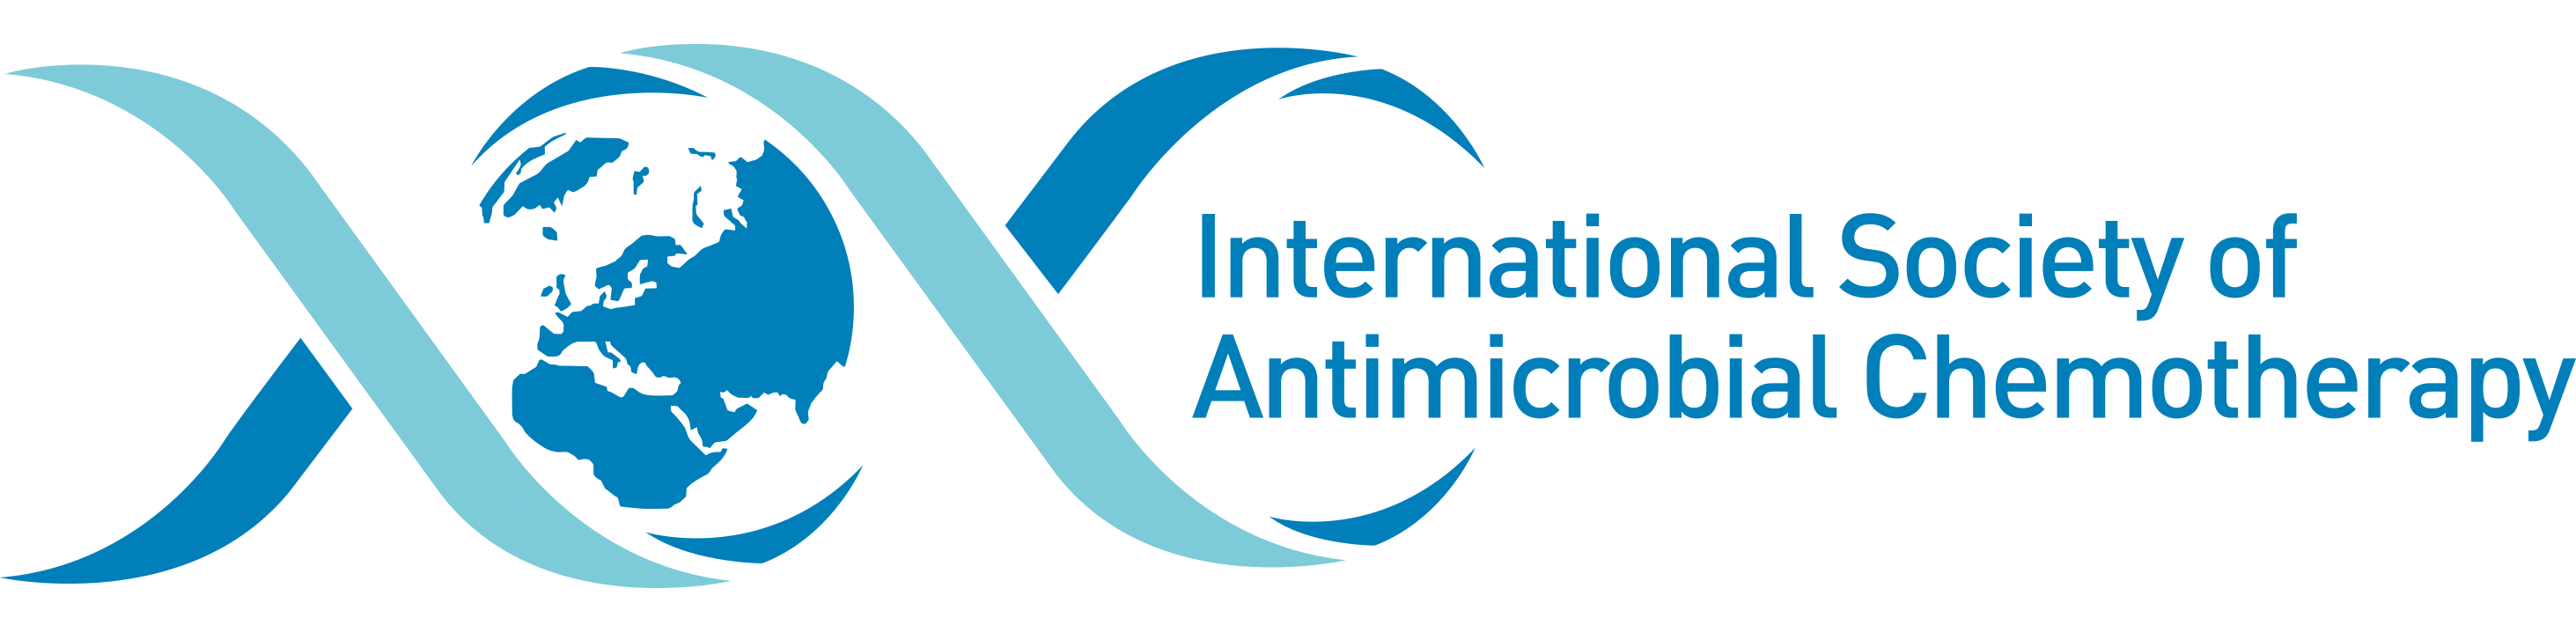 International Society of Antimicrobial Chemotherapy